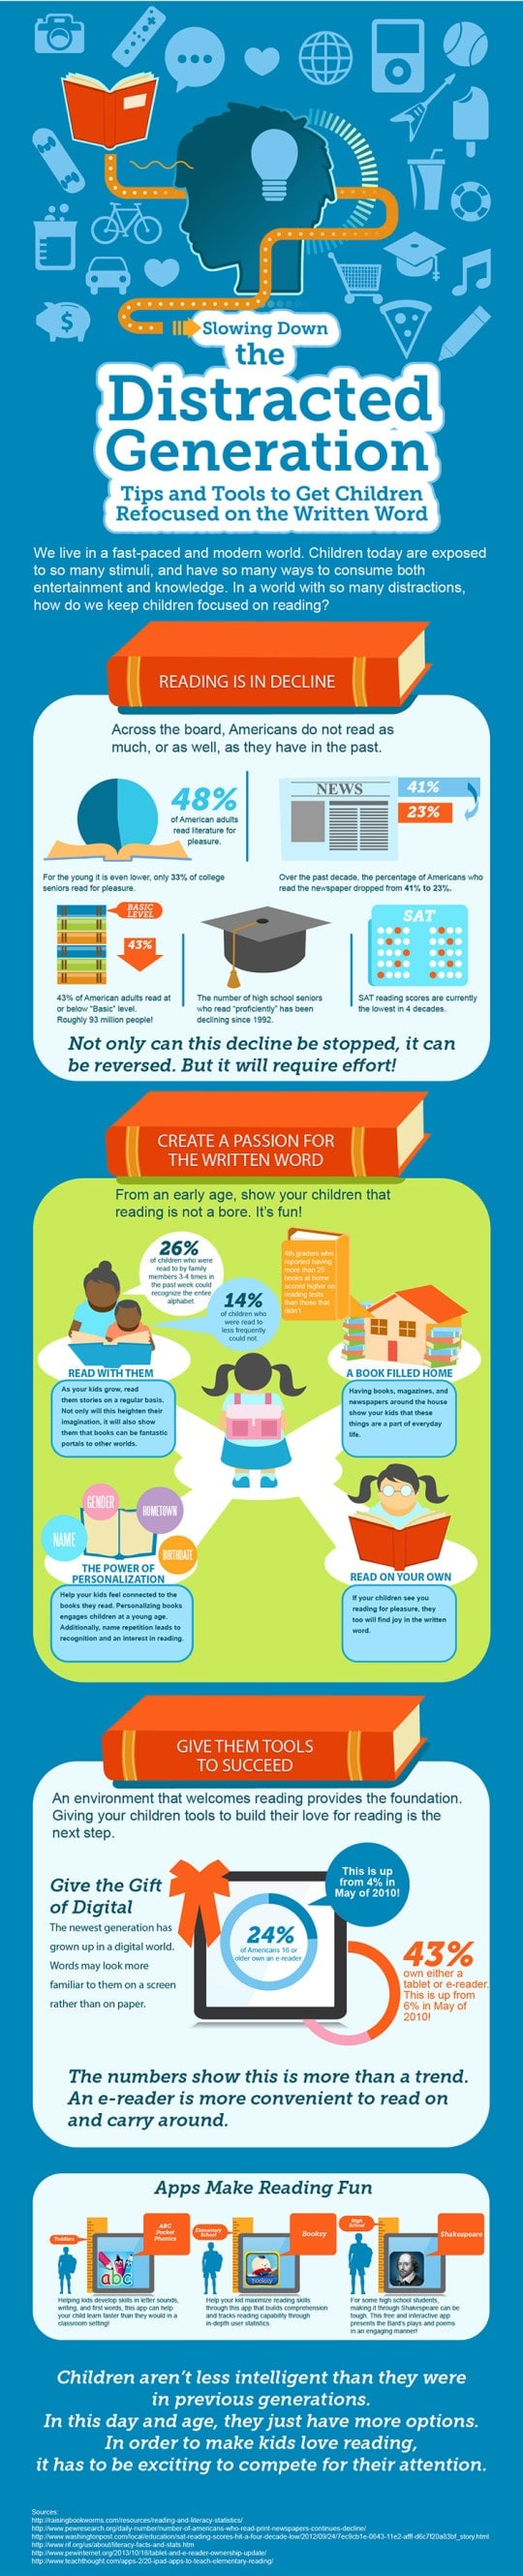 Tips-to-get-children-refocus-on-reading-infographic-540x2758